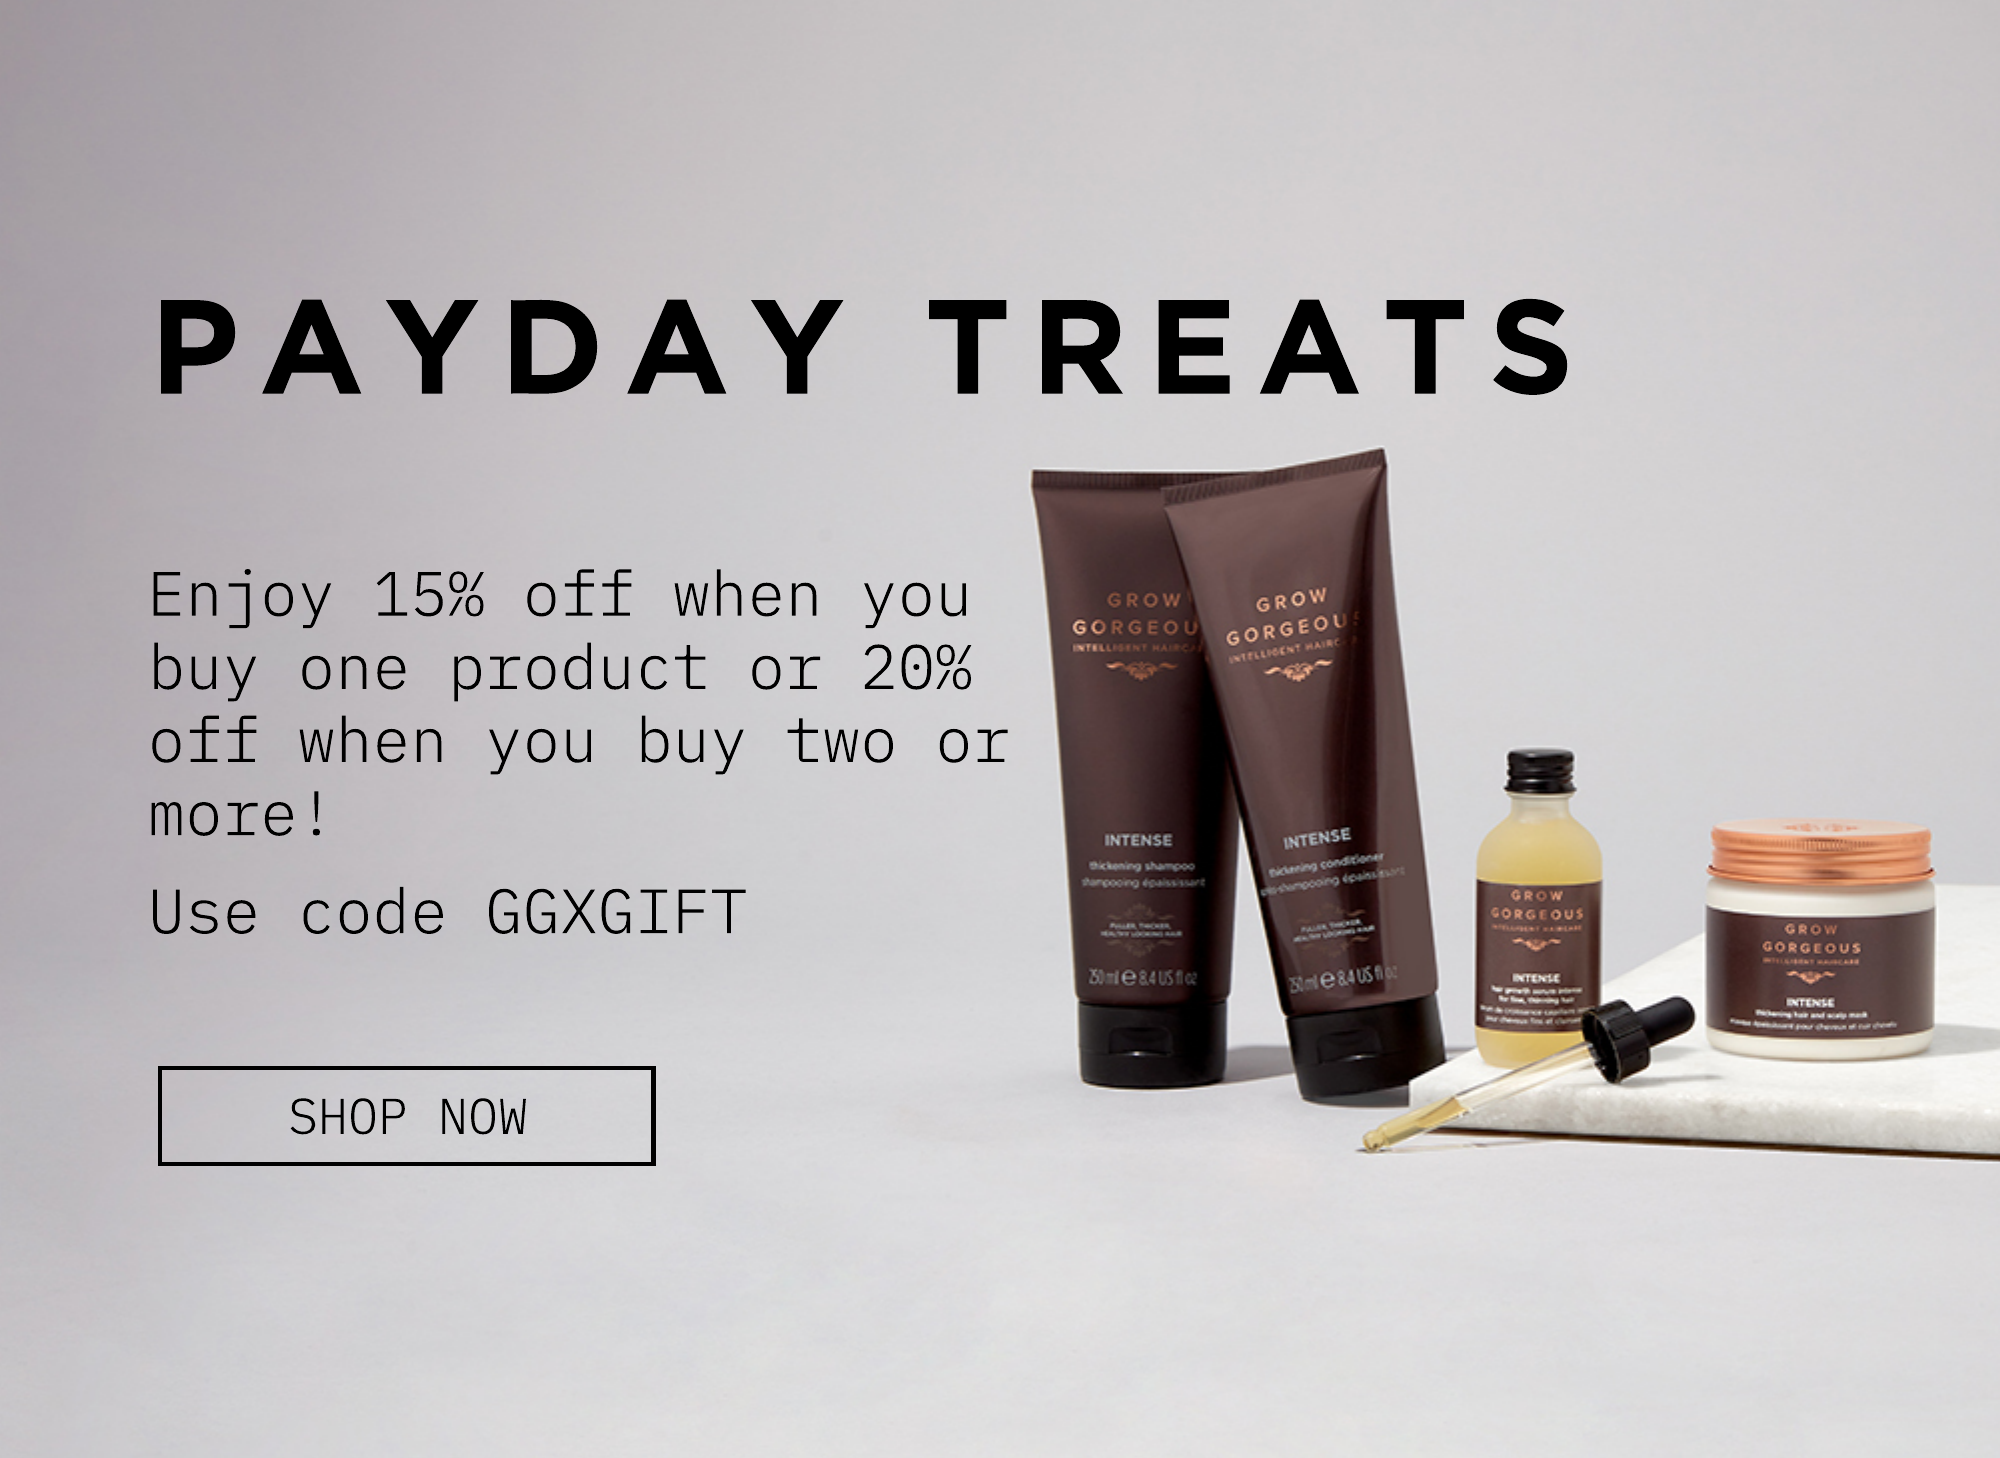 Payday Treats. Enjoy 15% off when you buy one product and 20% when you buy two or more. Use code GGXGIFT